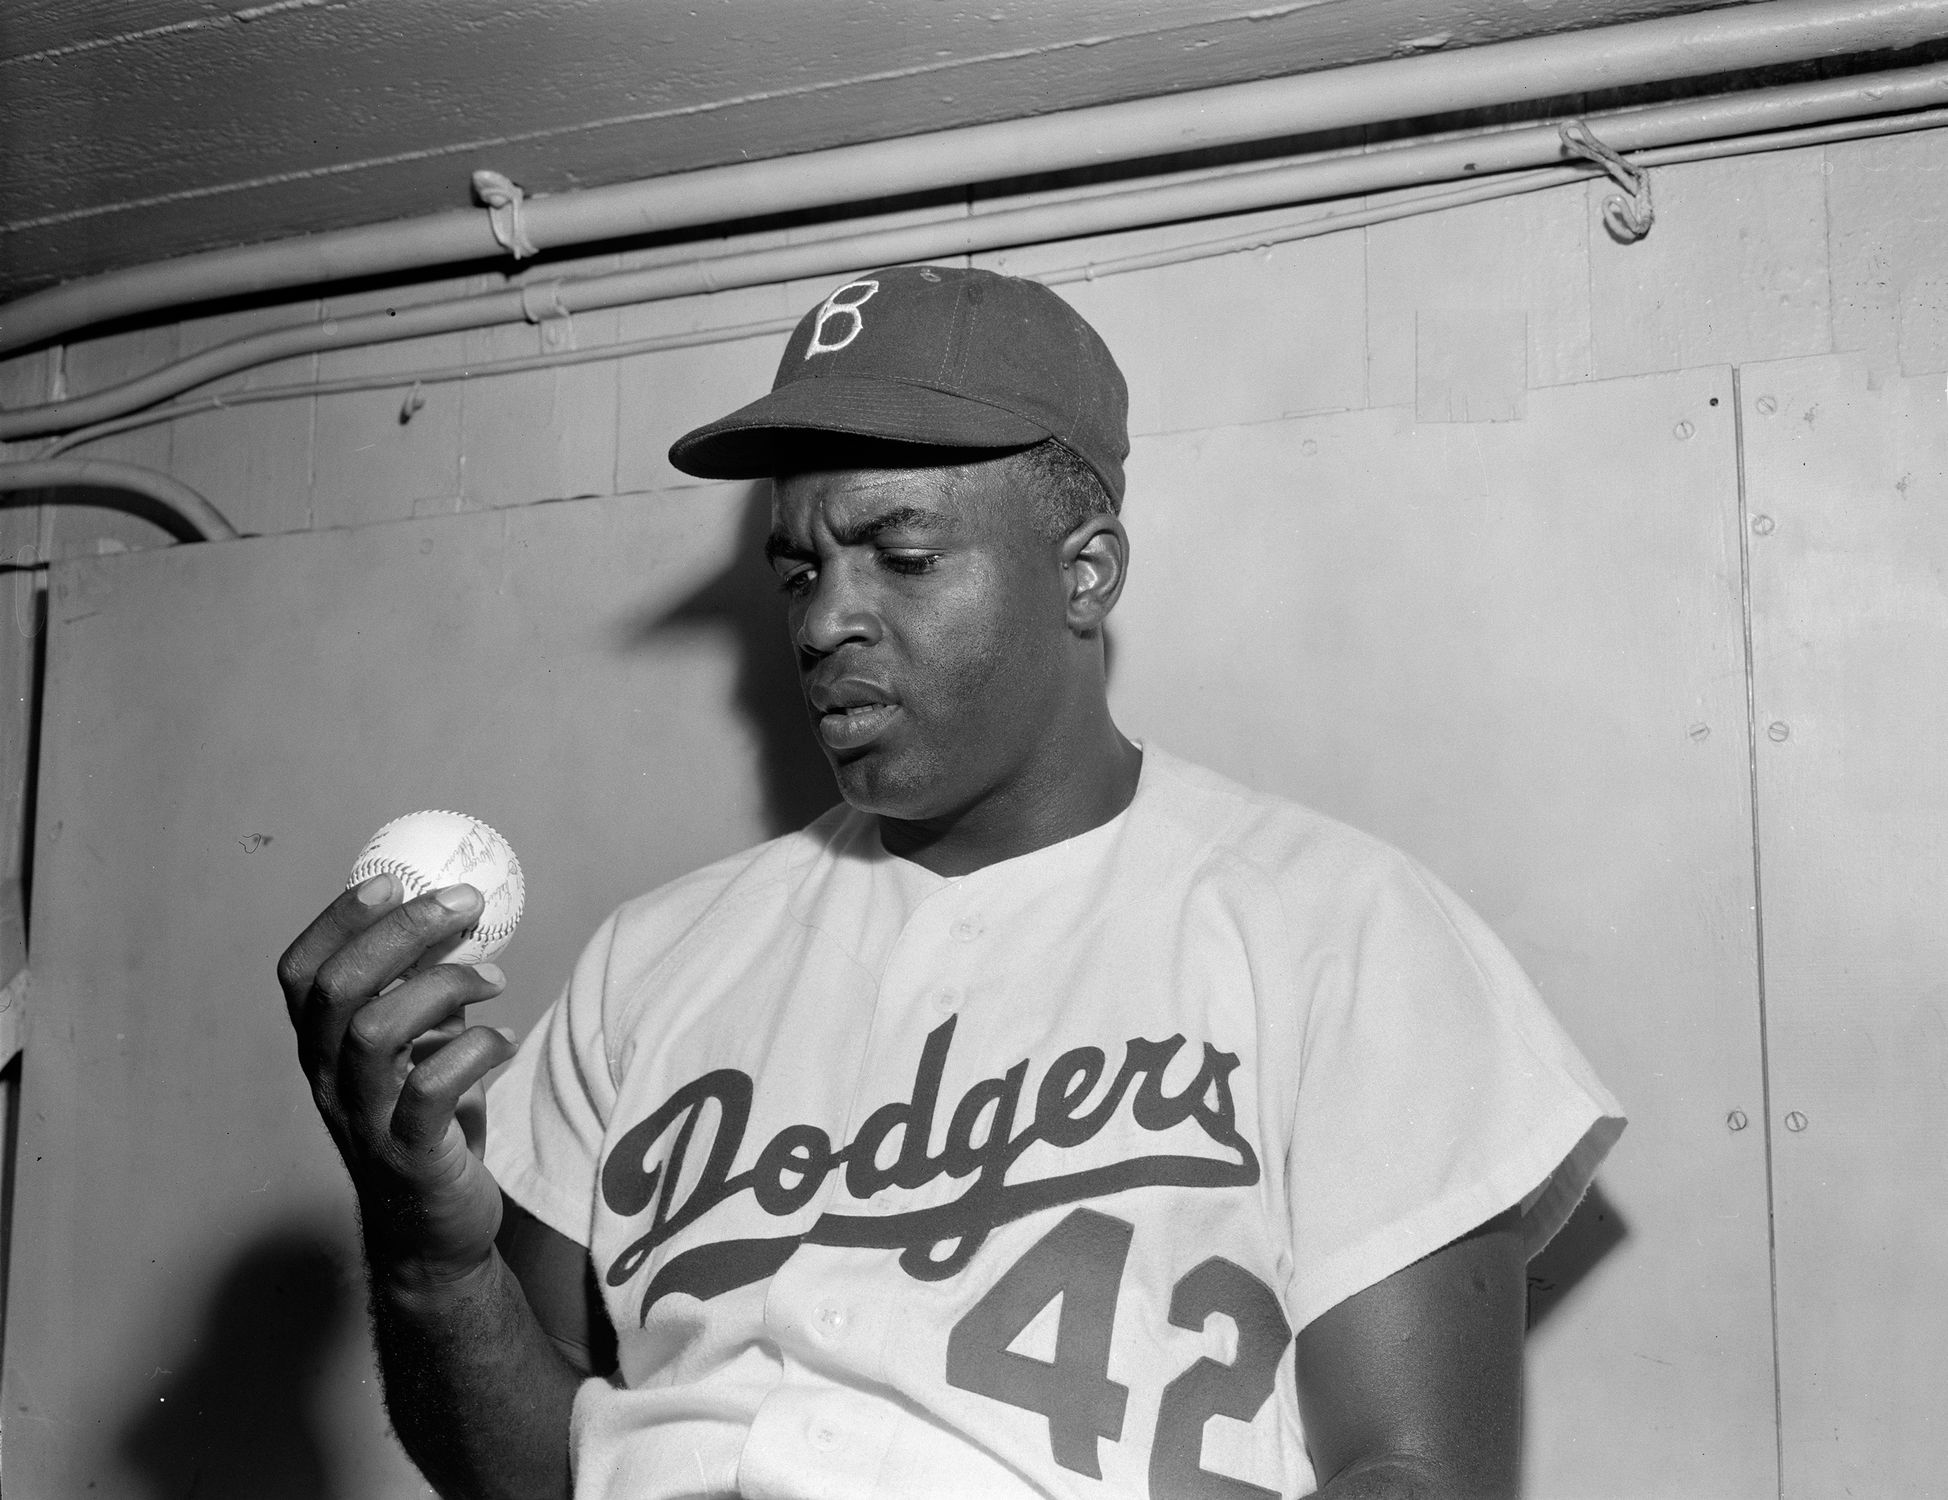 outlet store d49ff 80244 April 15, 1997: Jackie Robinson's Number Retired | Baseball ...